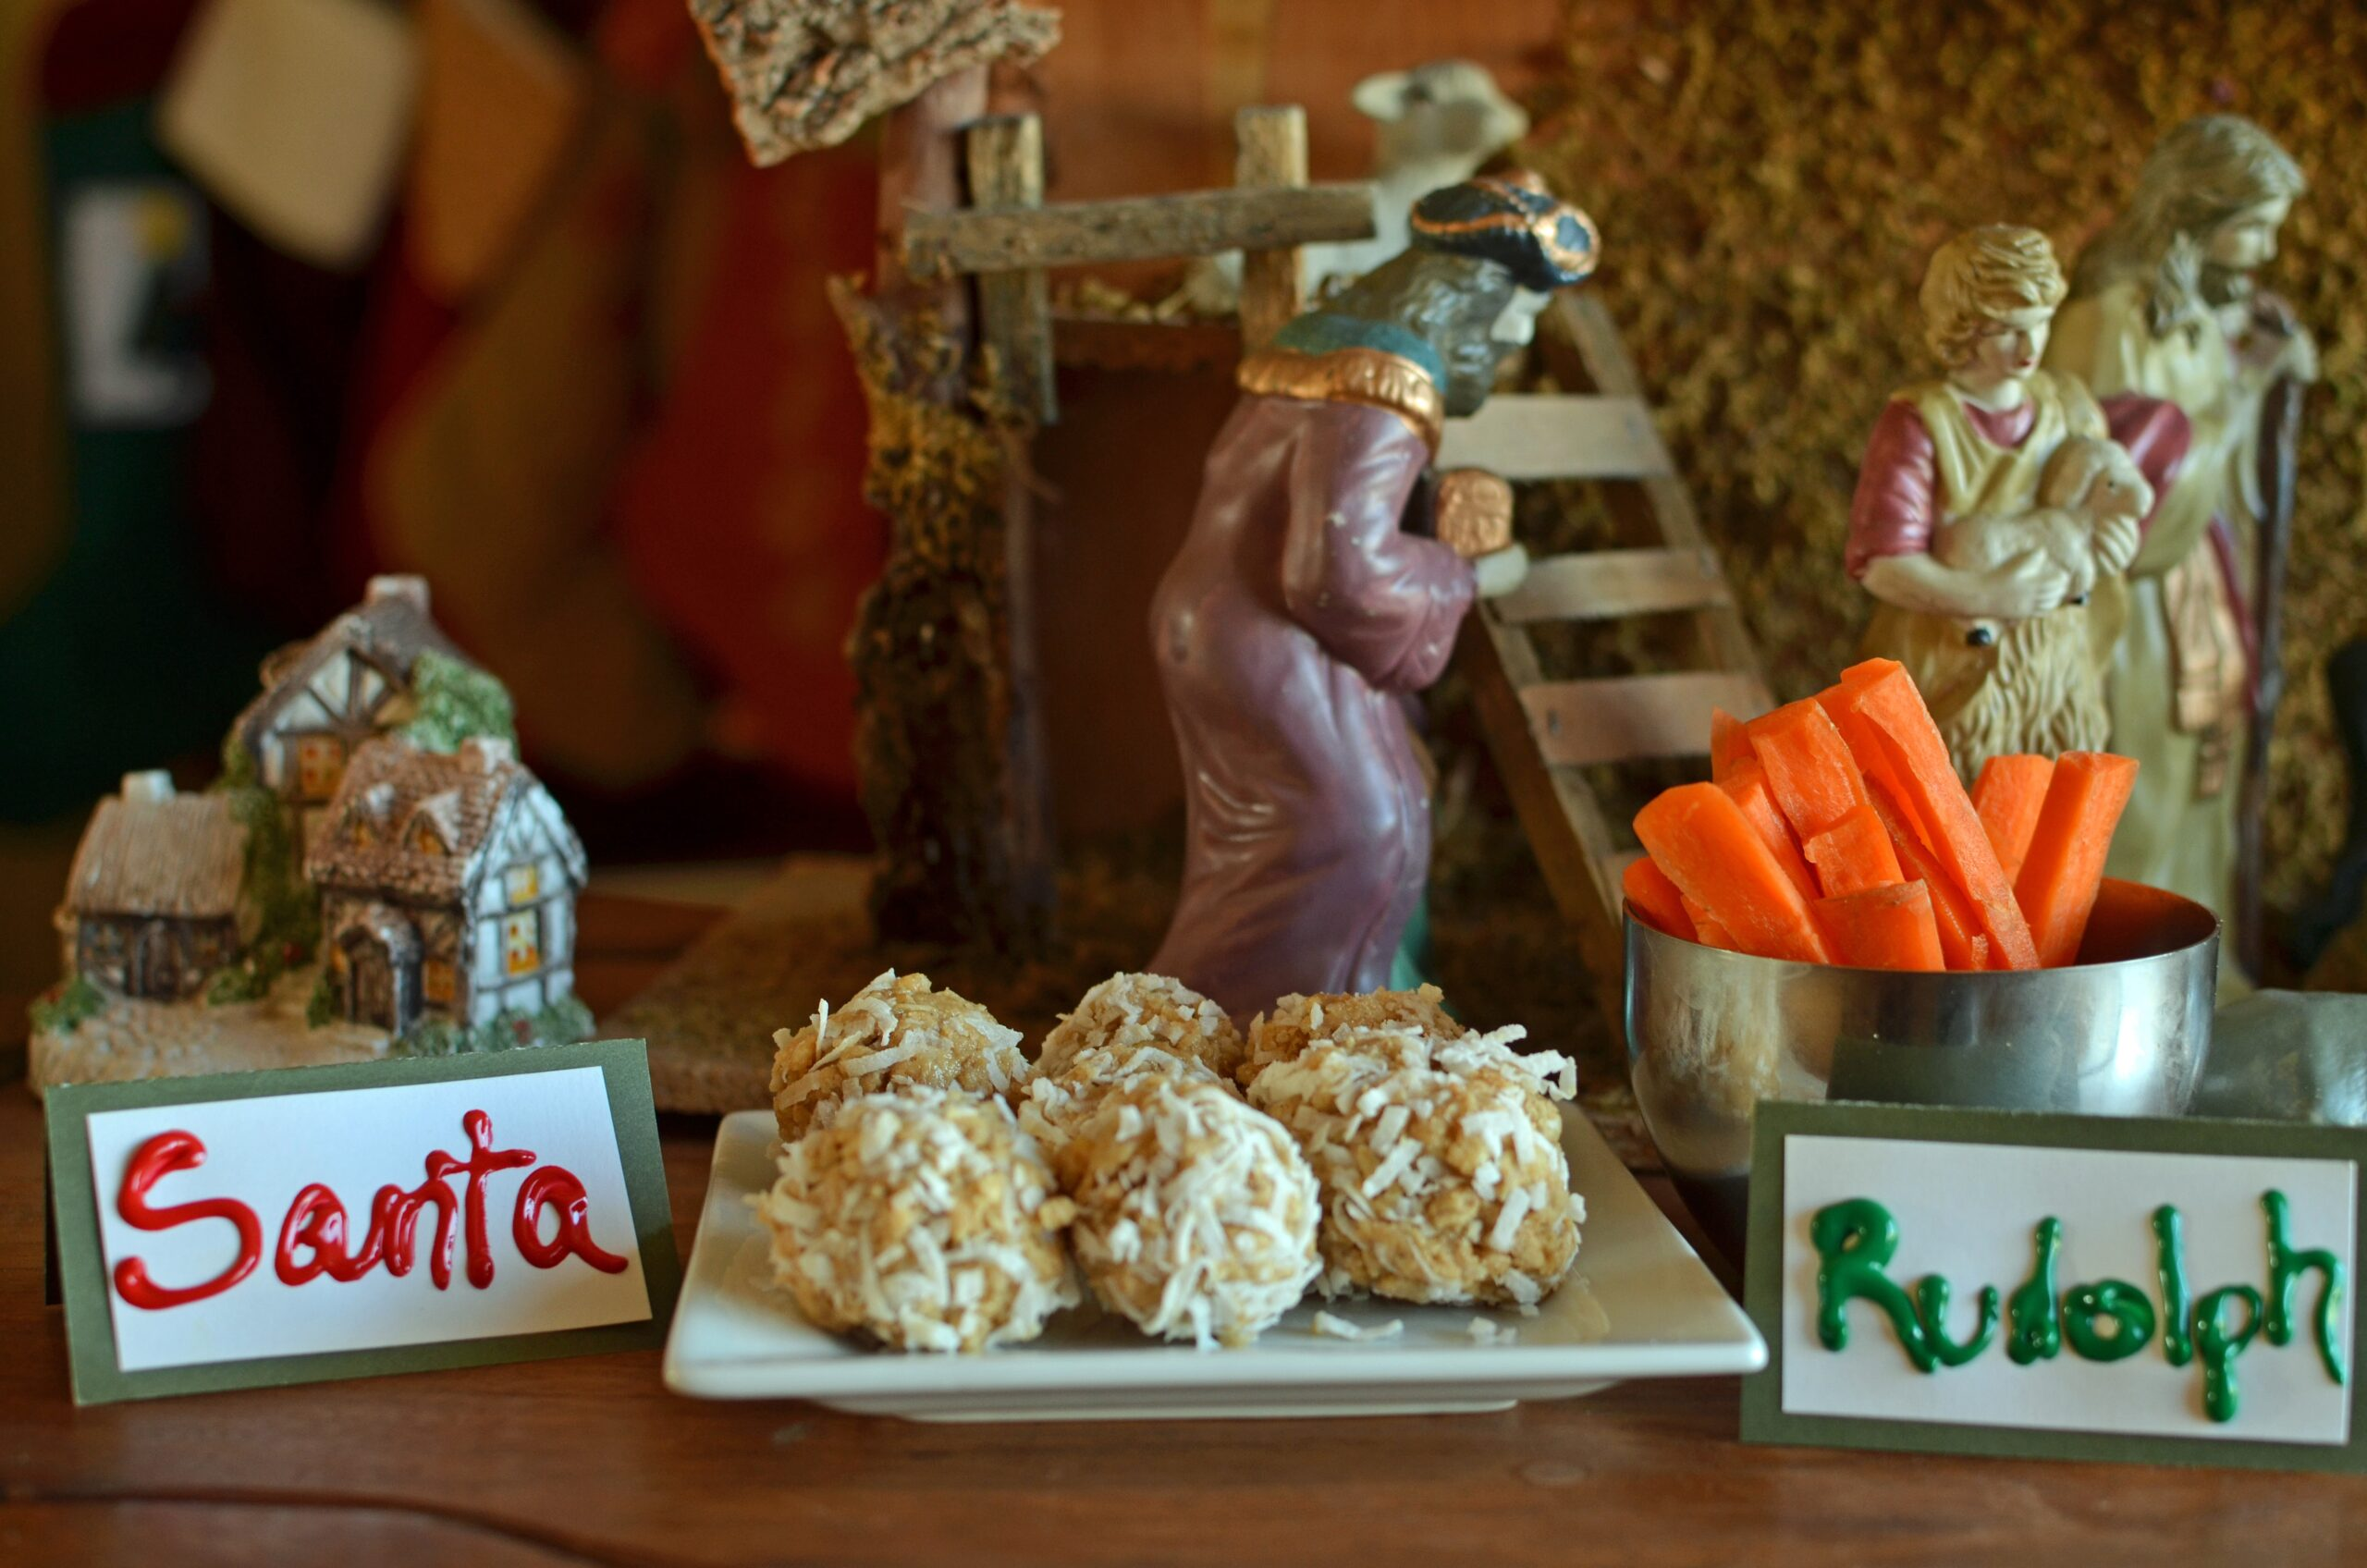 No Bake Snow Balls for Santa and Veggies for Rudolph